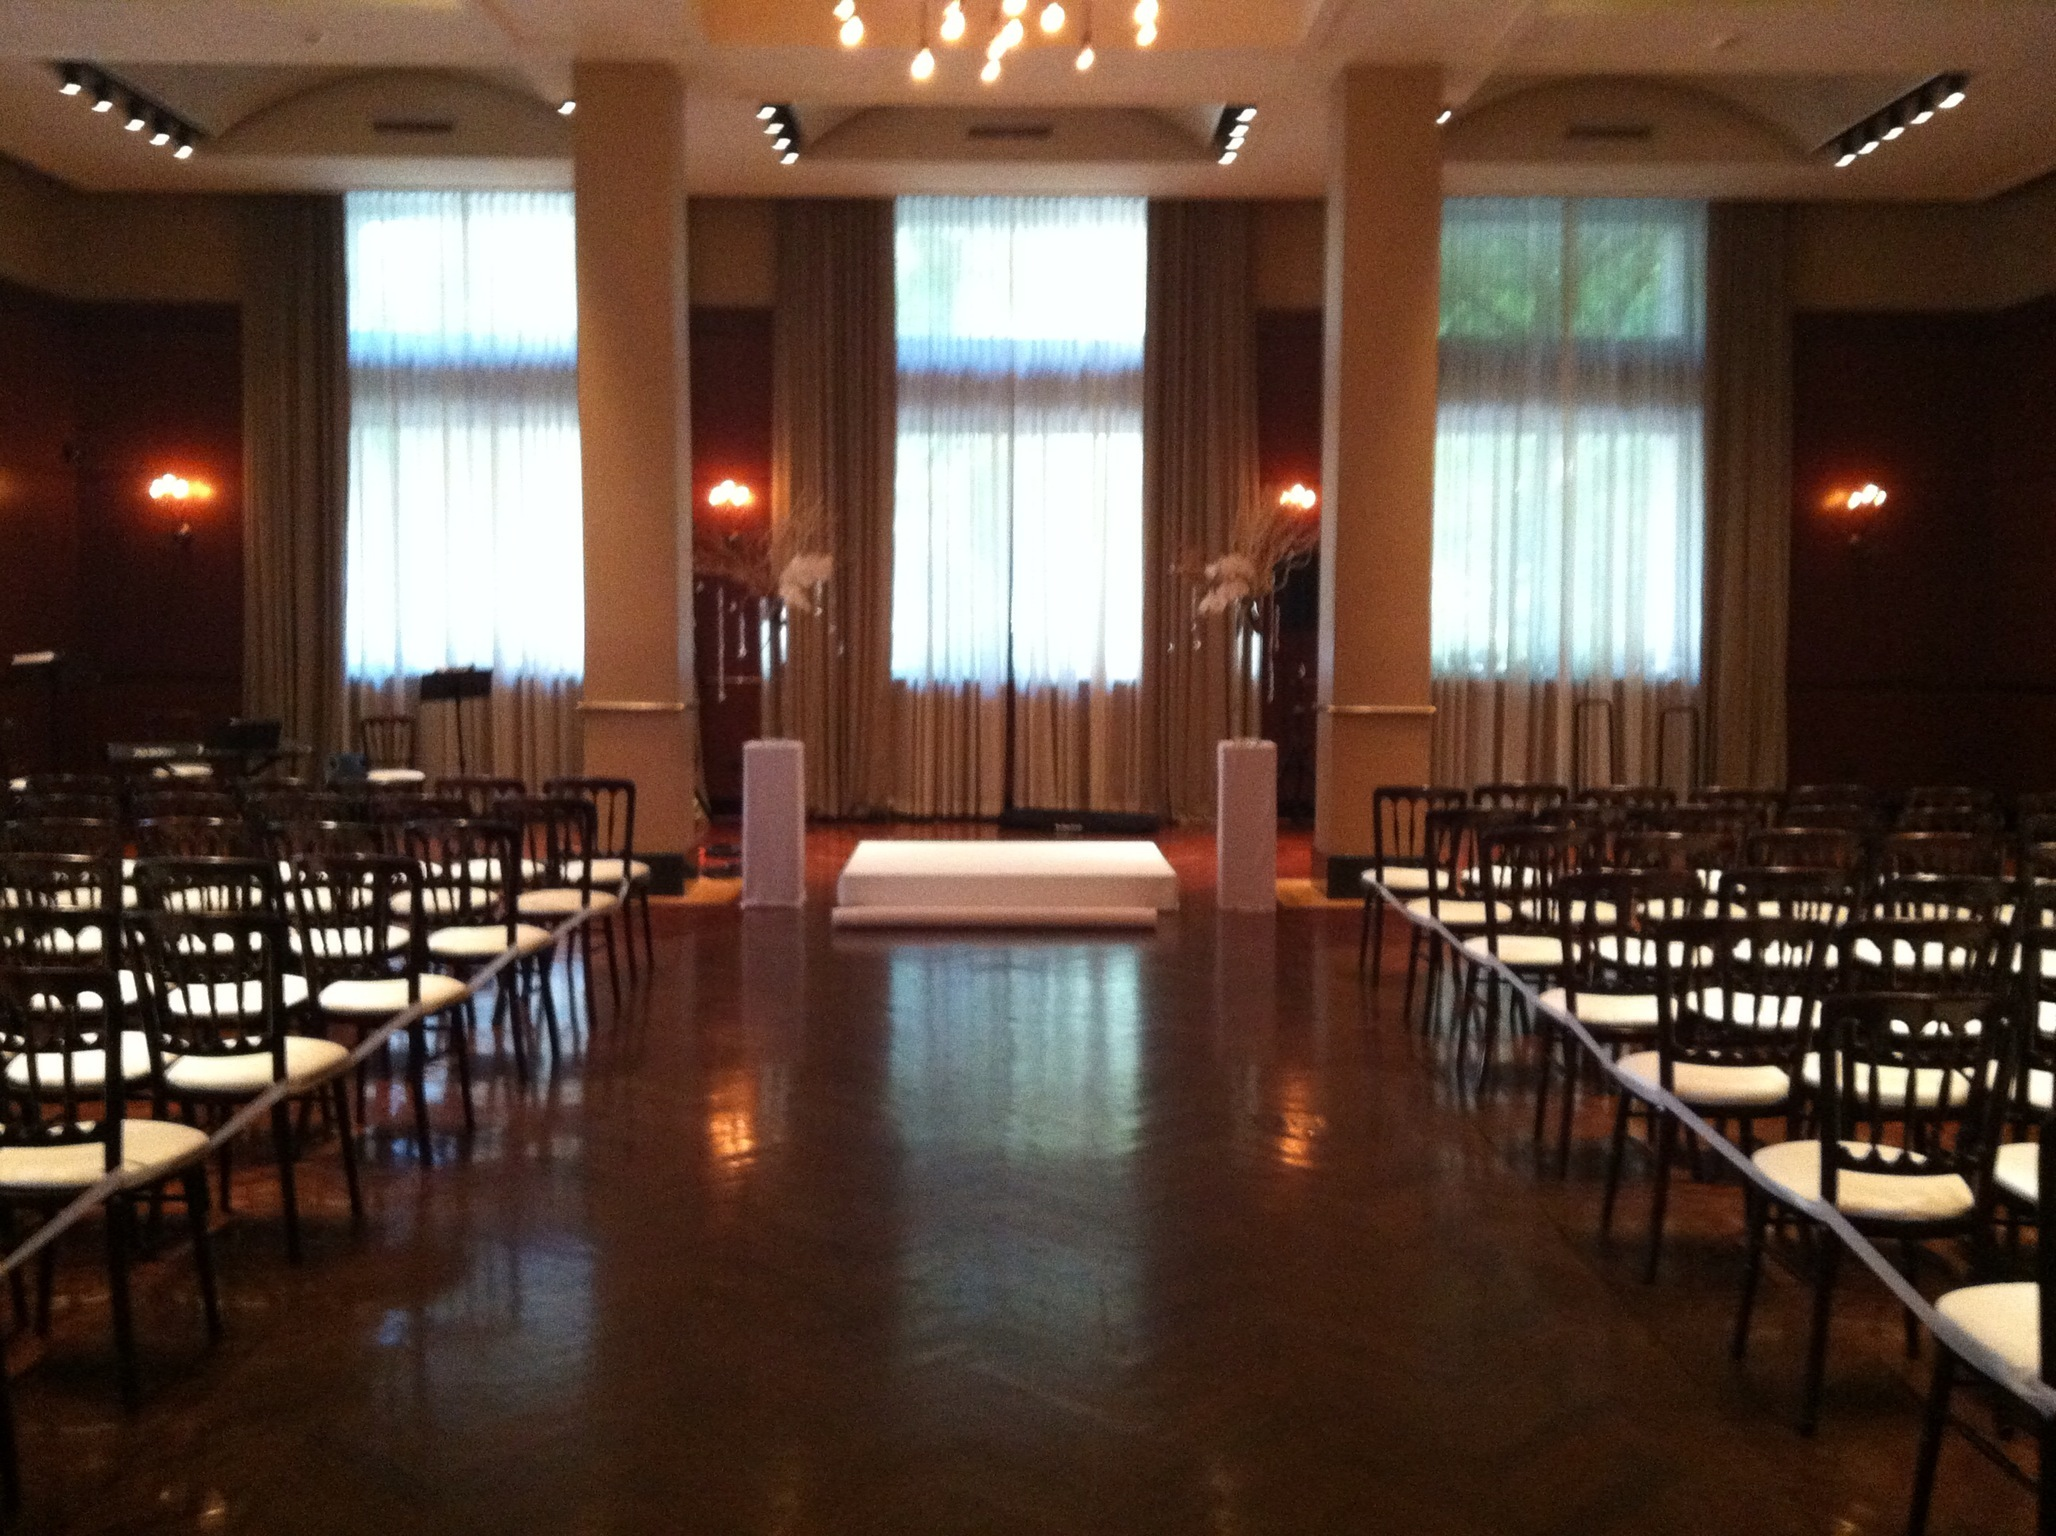 Liven It Up Events| Boutique Weddings, Corporate Affairs and ...